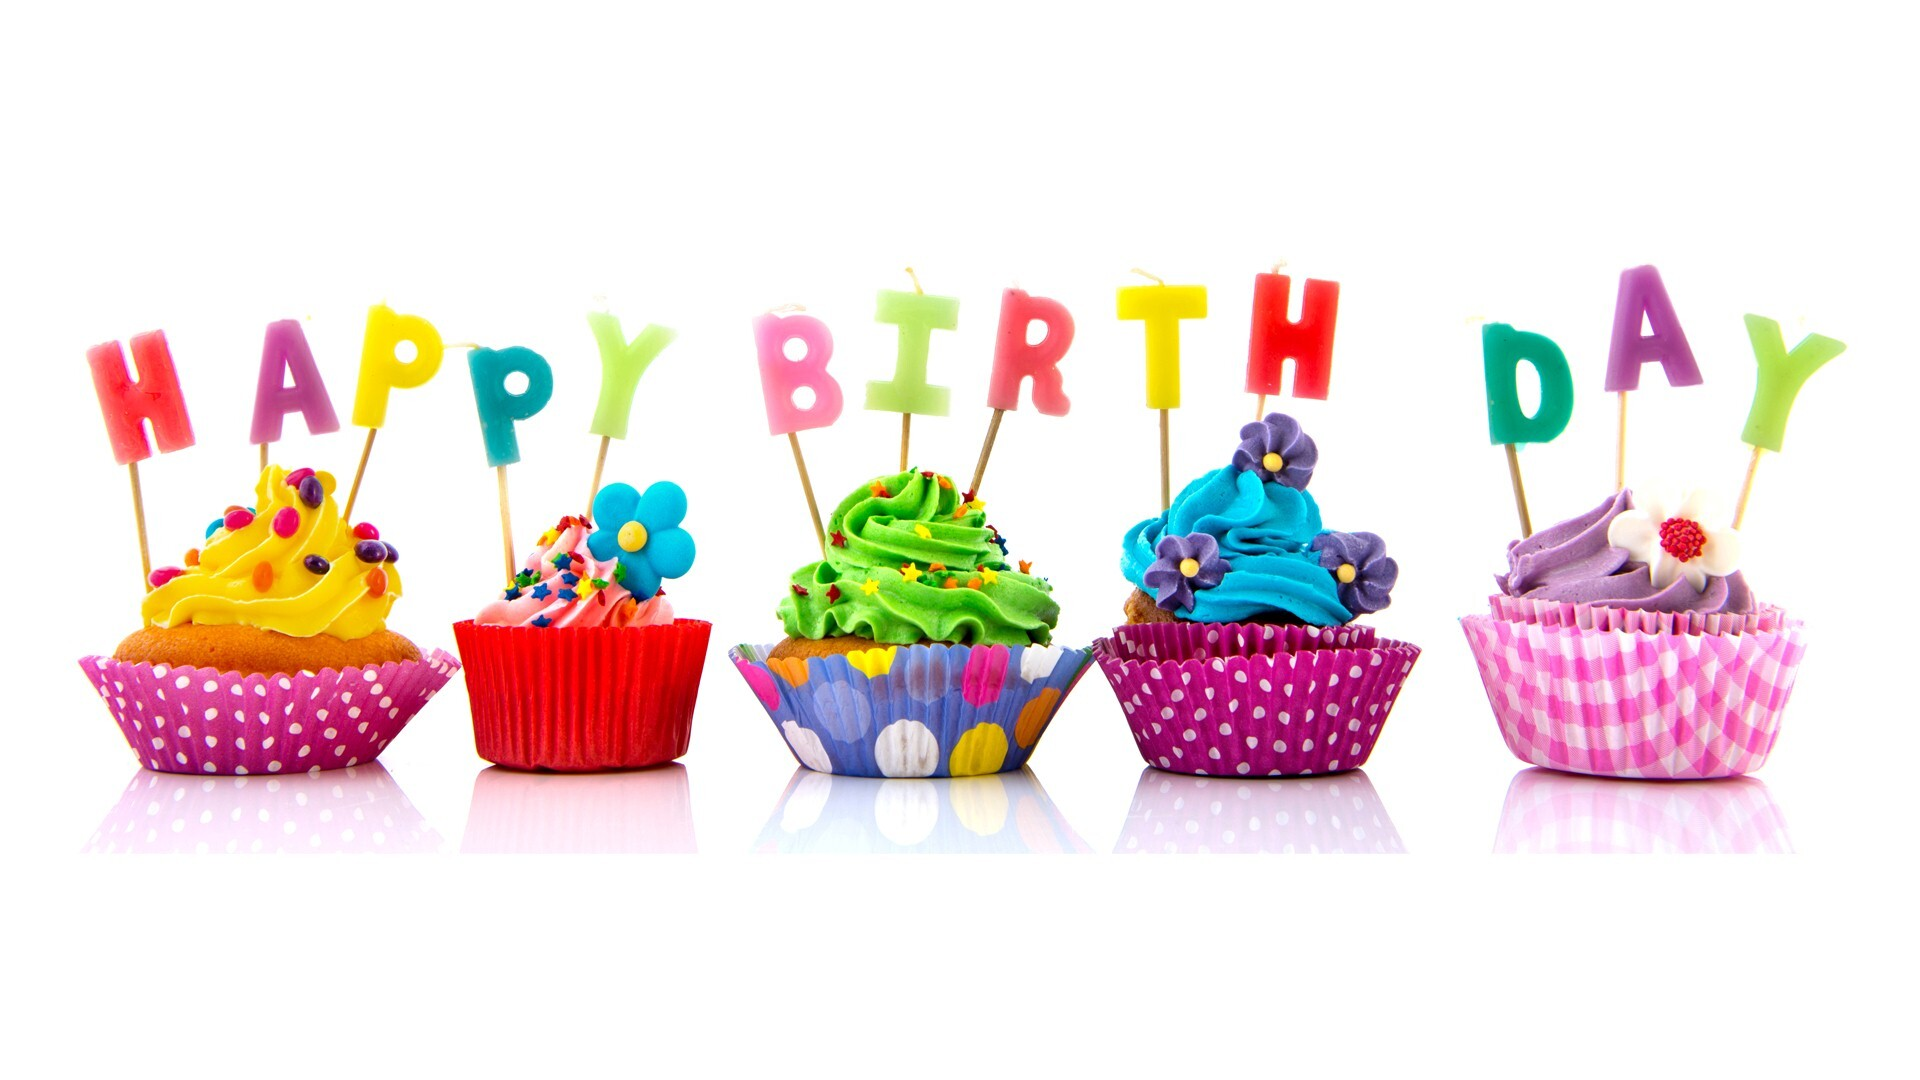 Beautiful Birthday Wallpaper : Beautiful Happy Birthday HD Desktop Background Wallpaper  HD ...